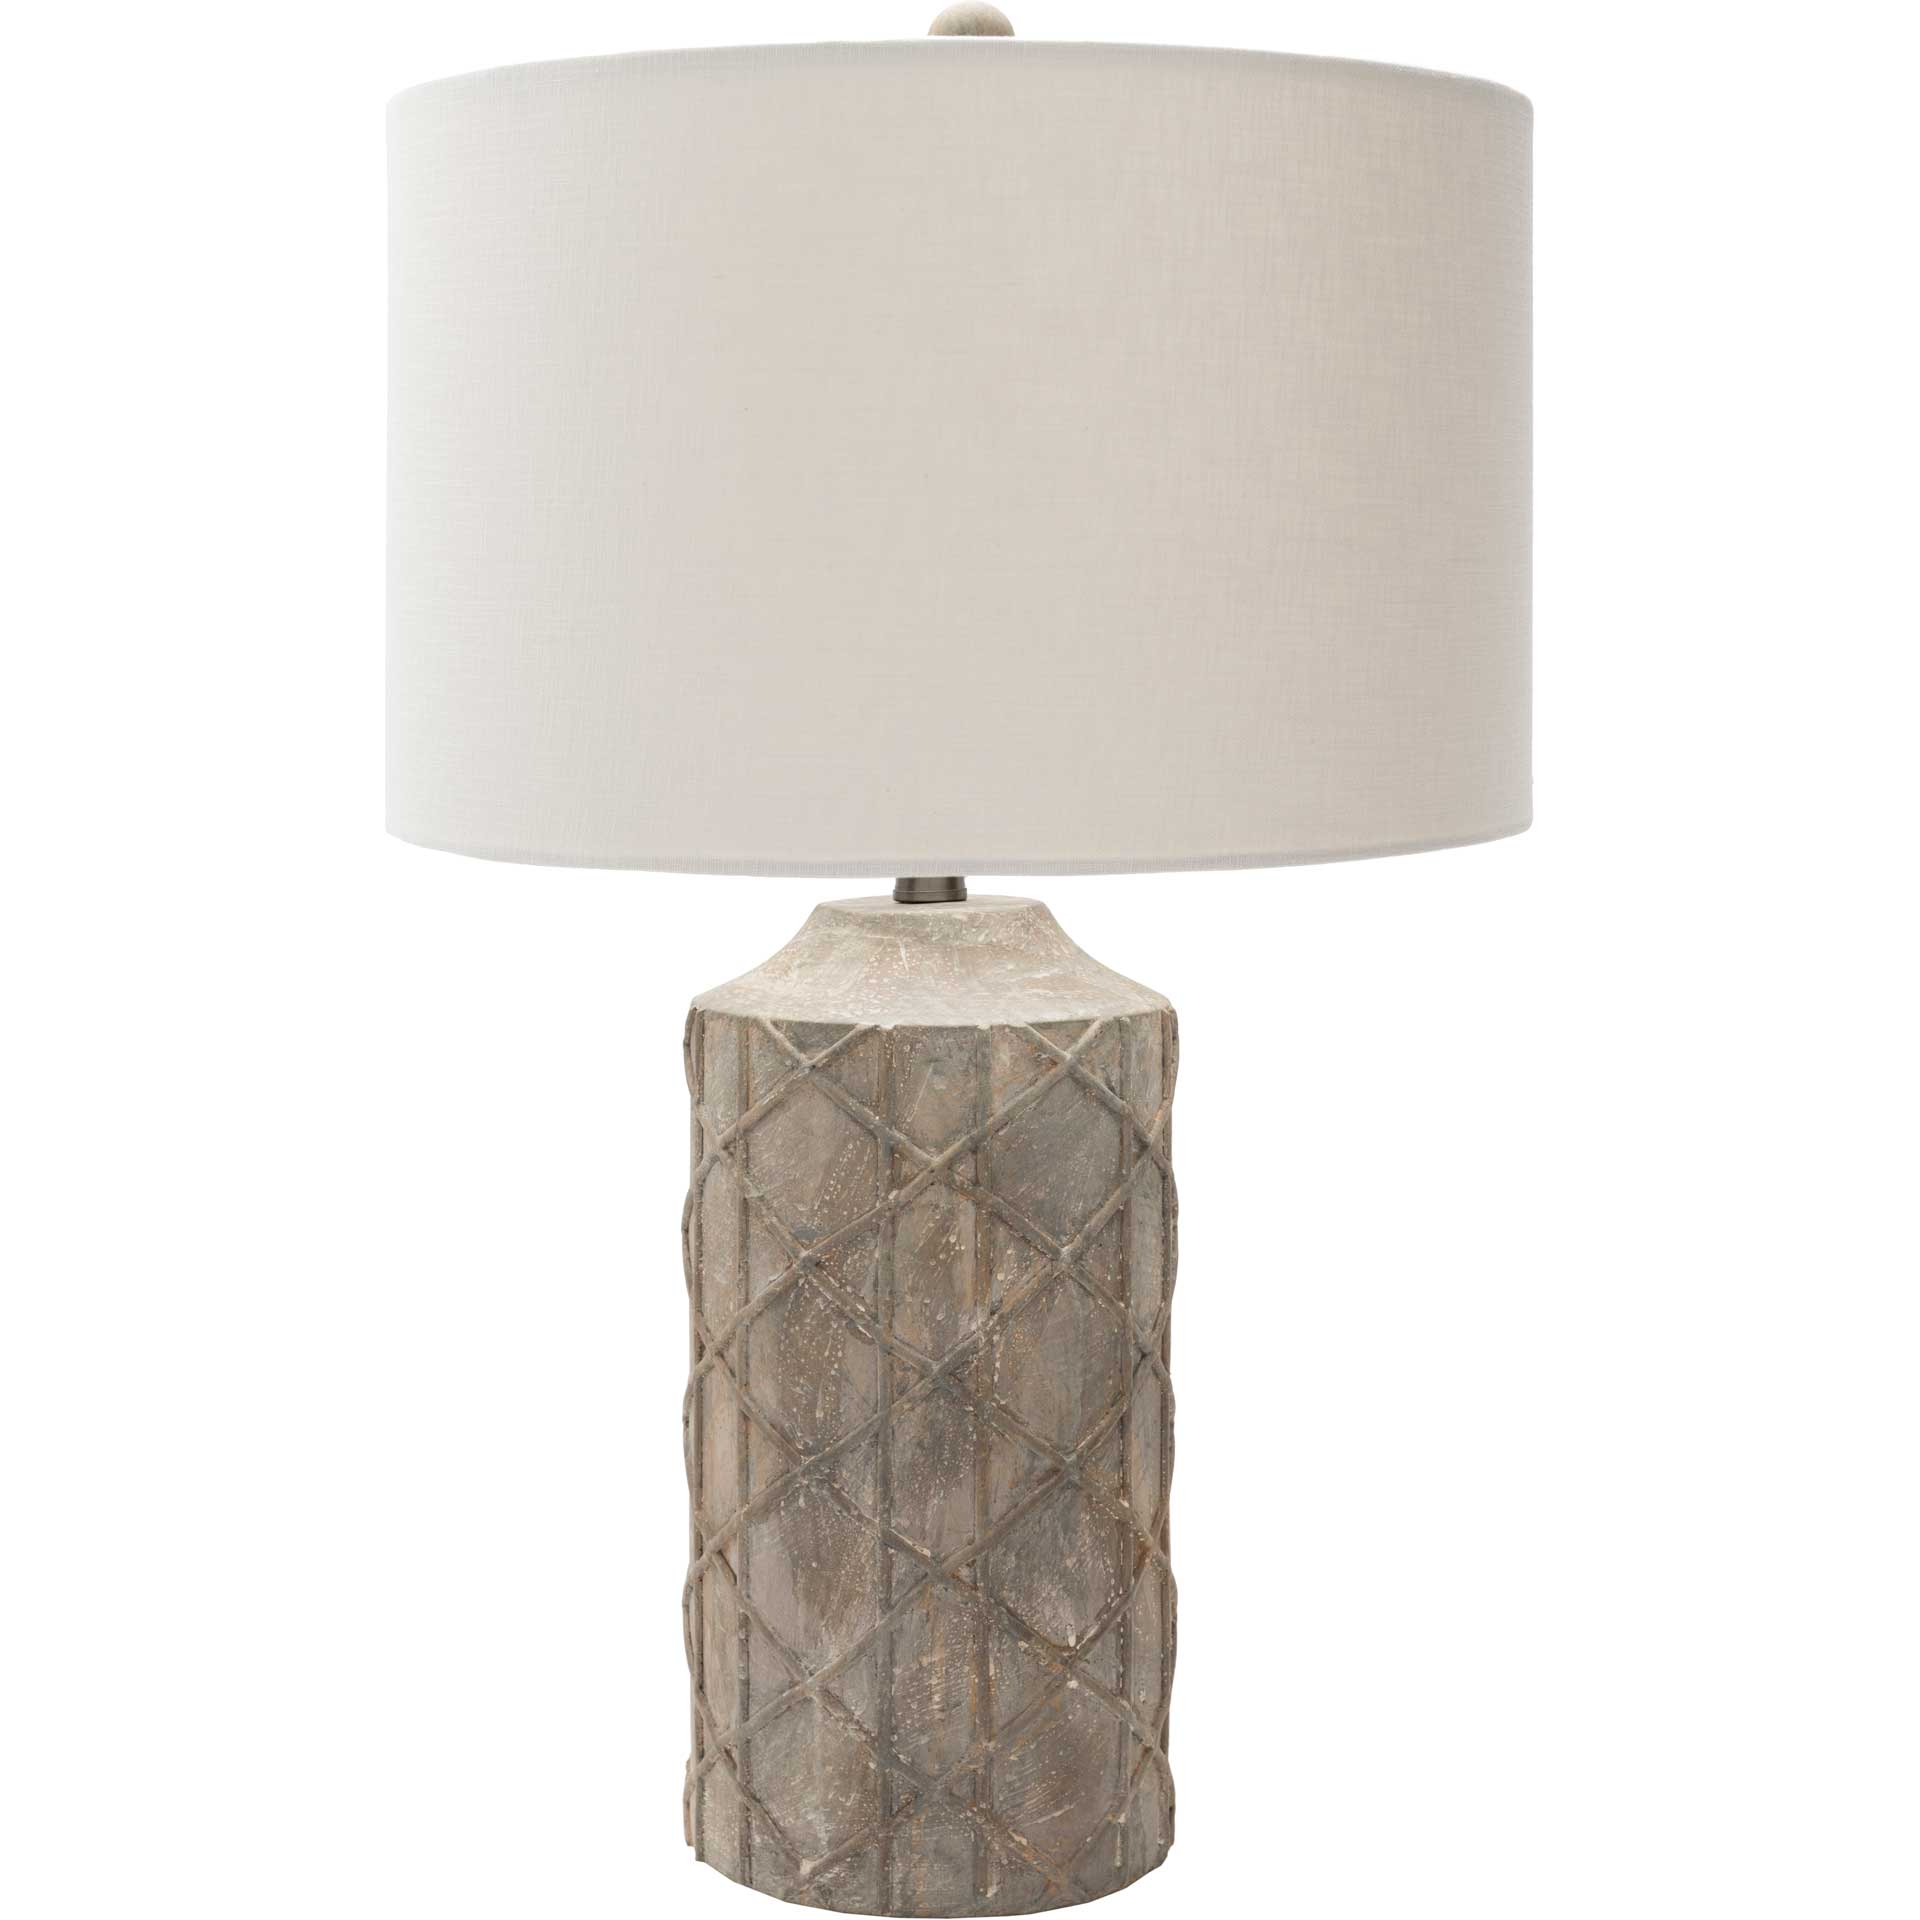 Braxton Table Lamp Camel/Ivory/Taupe